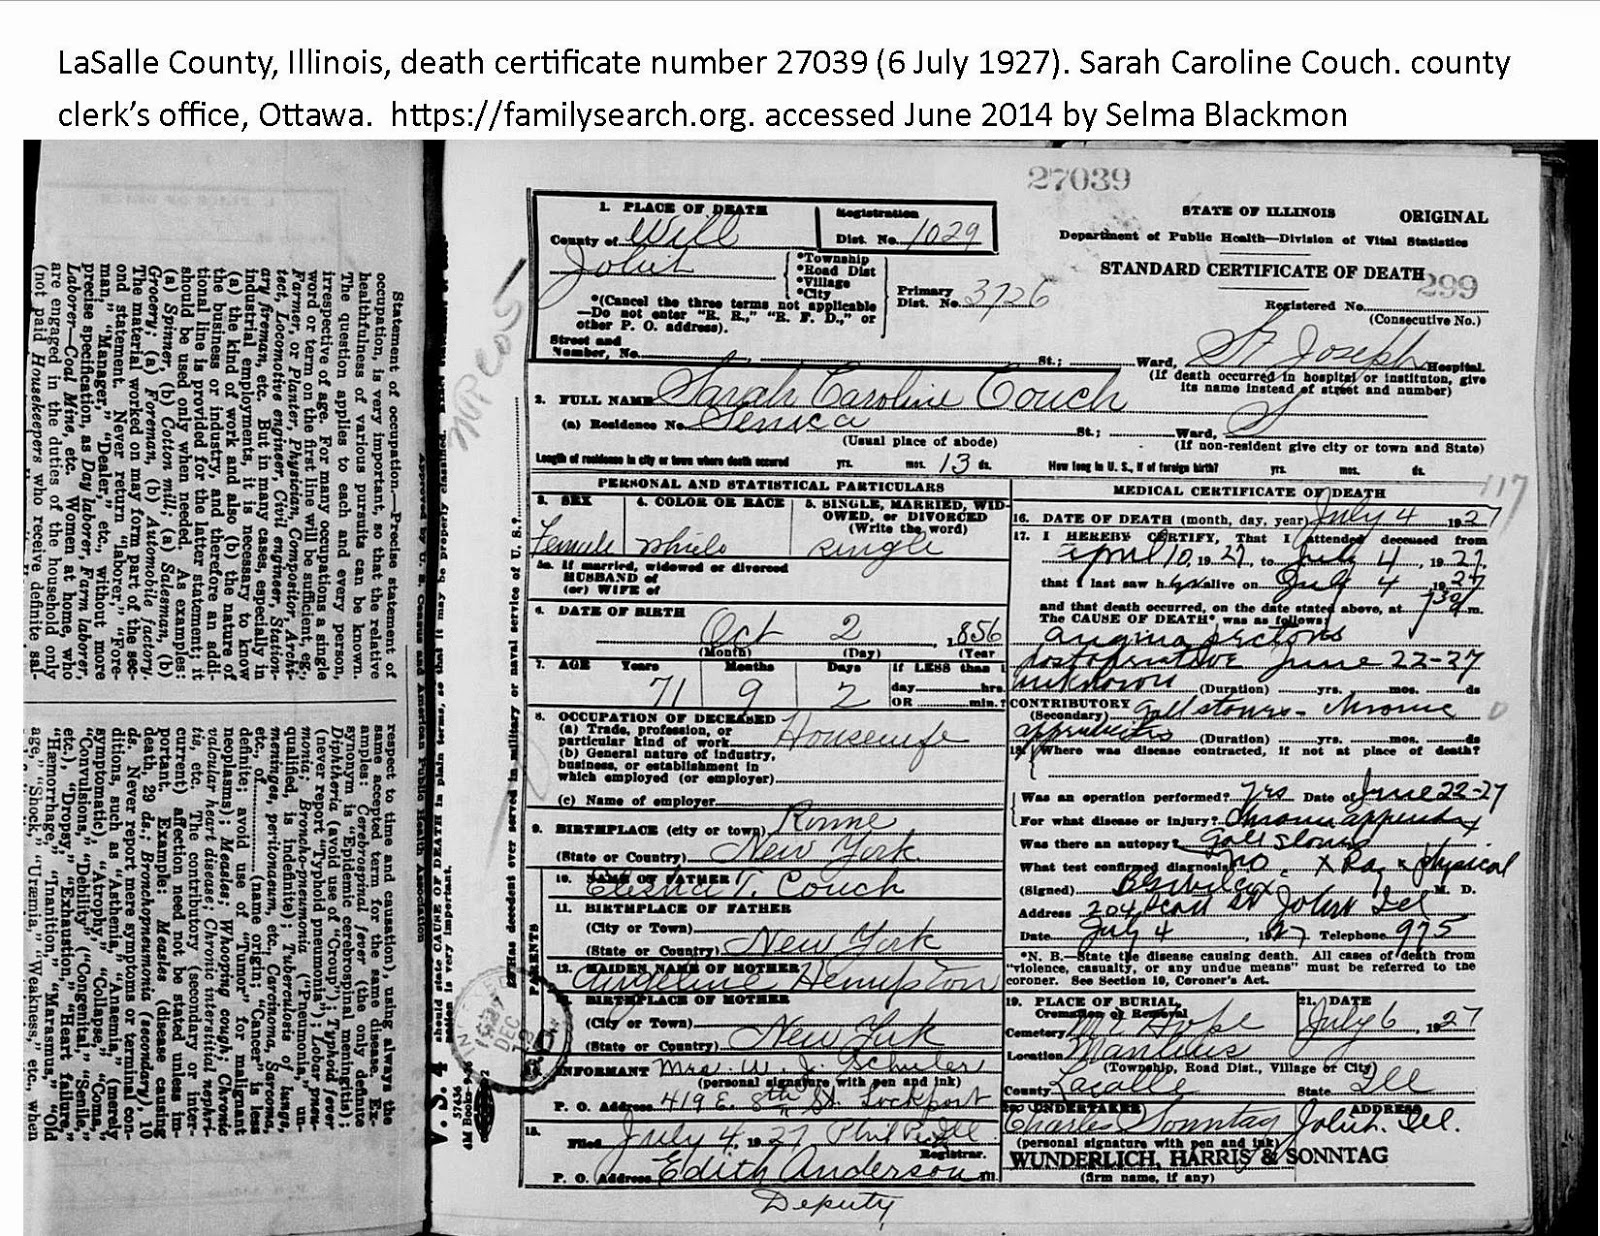 Genealogical research past present future who is the mother who is the mother of sarah caroline couch 1856 1927 according to the death certificate xflitez Choice Image